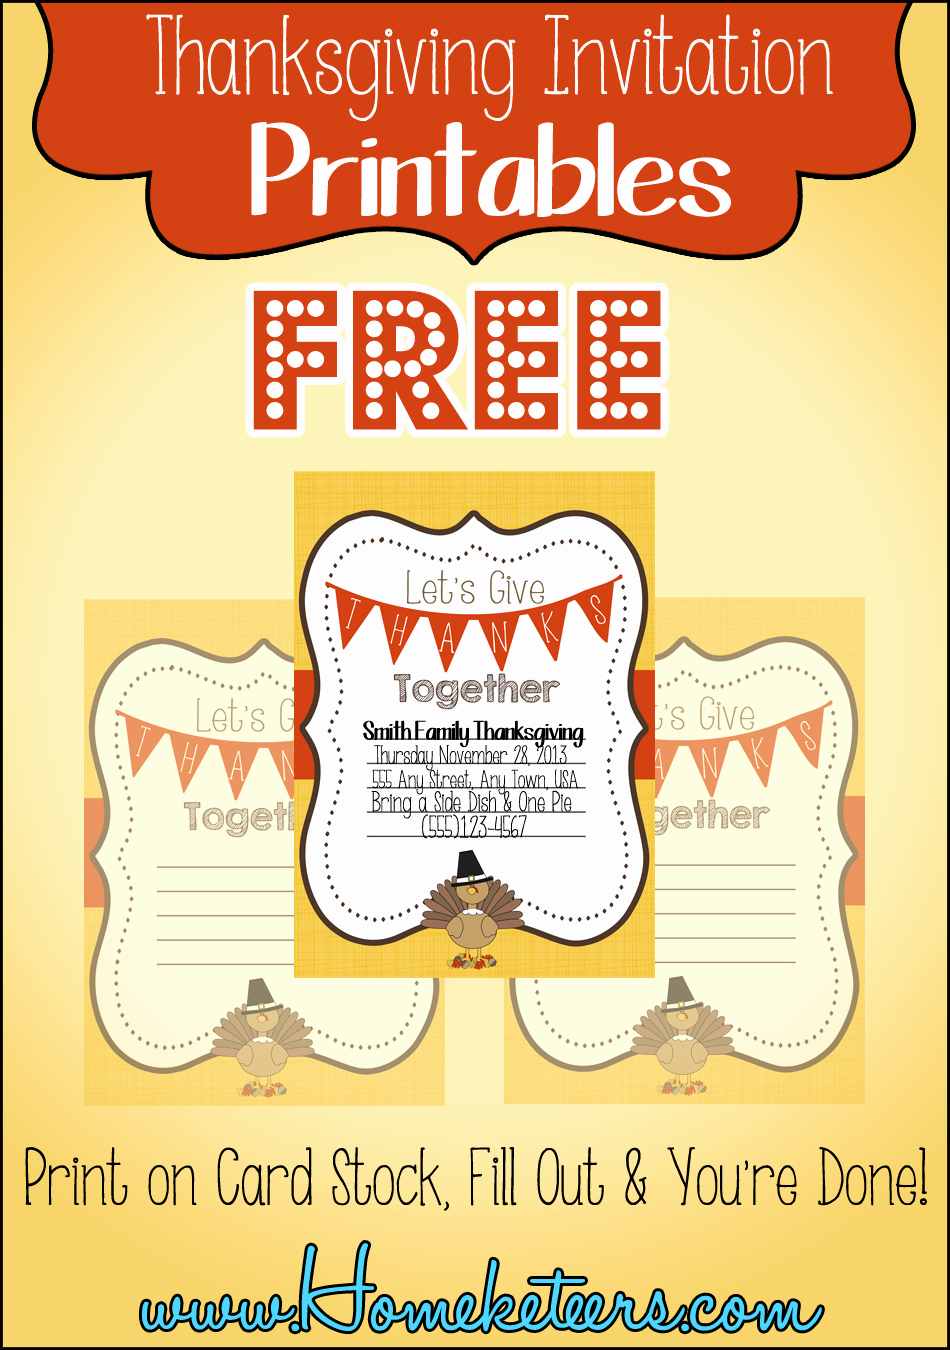 Potluck Invitation Template Free Awesome 9 Best Of Free Printable Thanksgiving Invitations